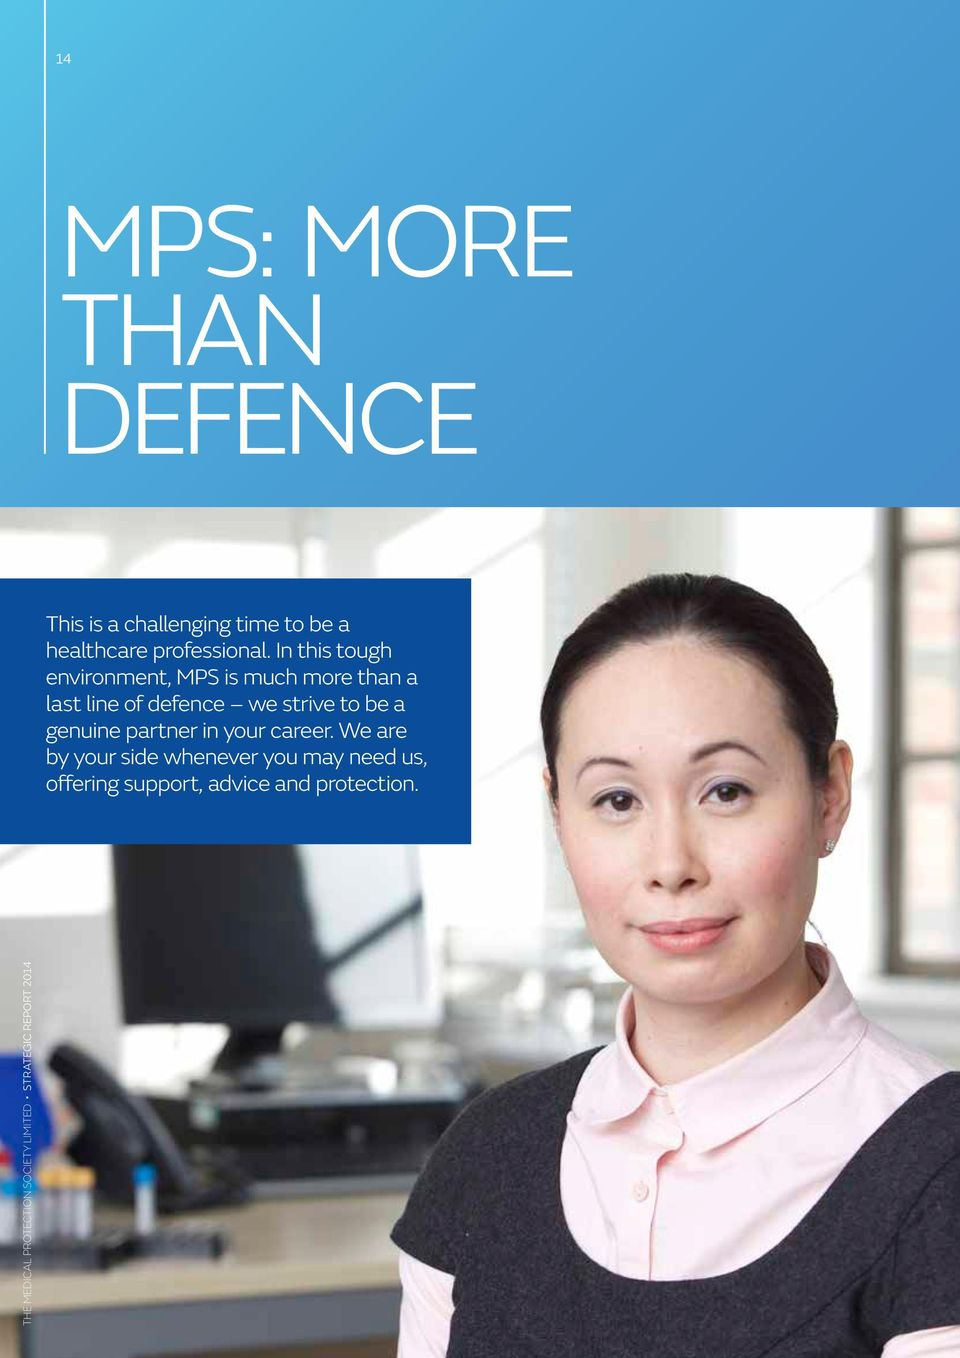 In this tough environment, MPS is much more than a last line of defence